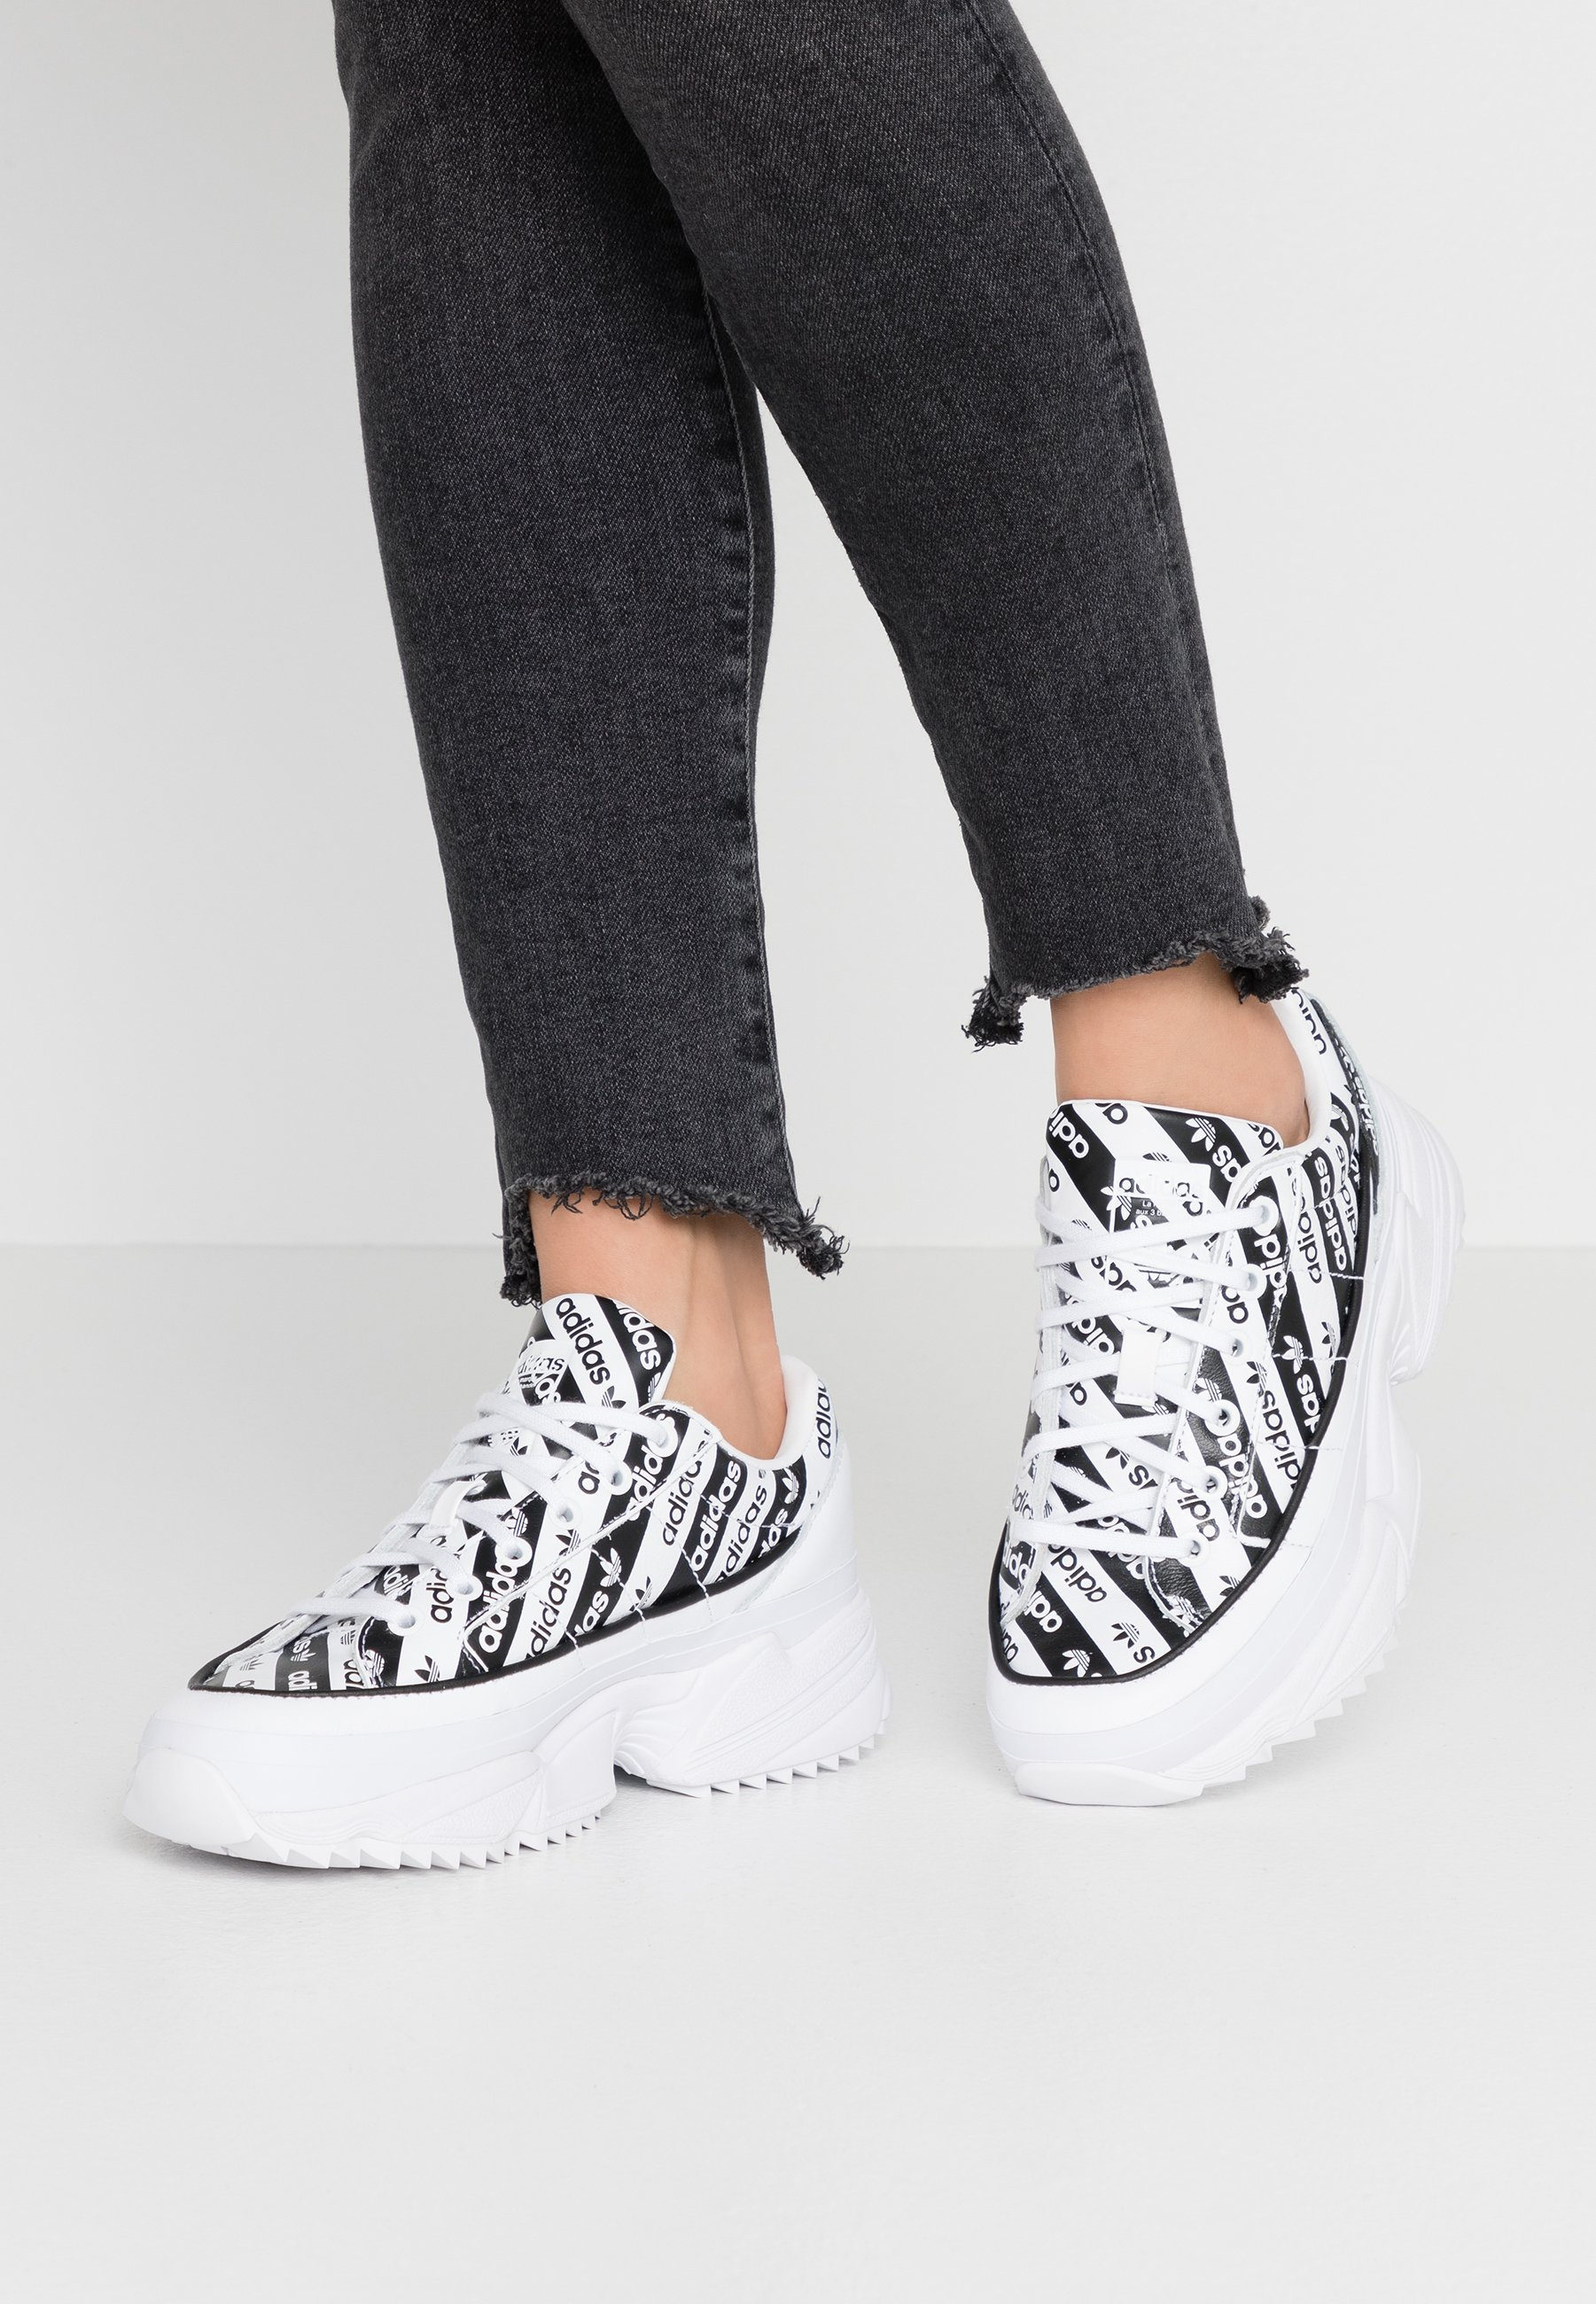 adidas Originals KIELLOR  - Baskets basses - footwear white/core black - Sneakers femme Qualité